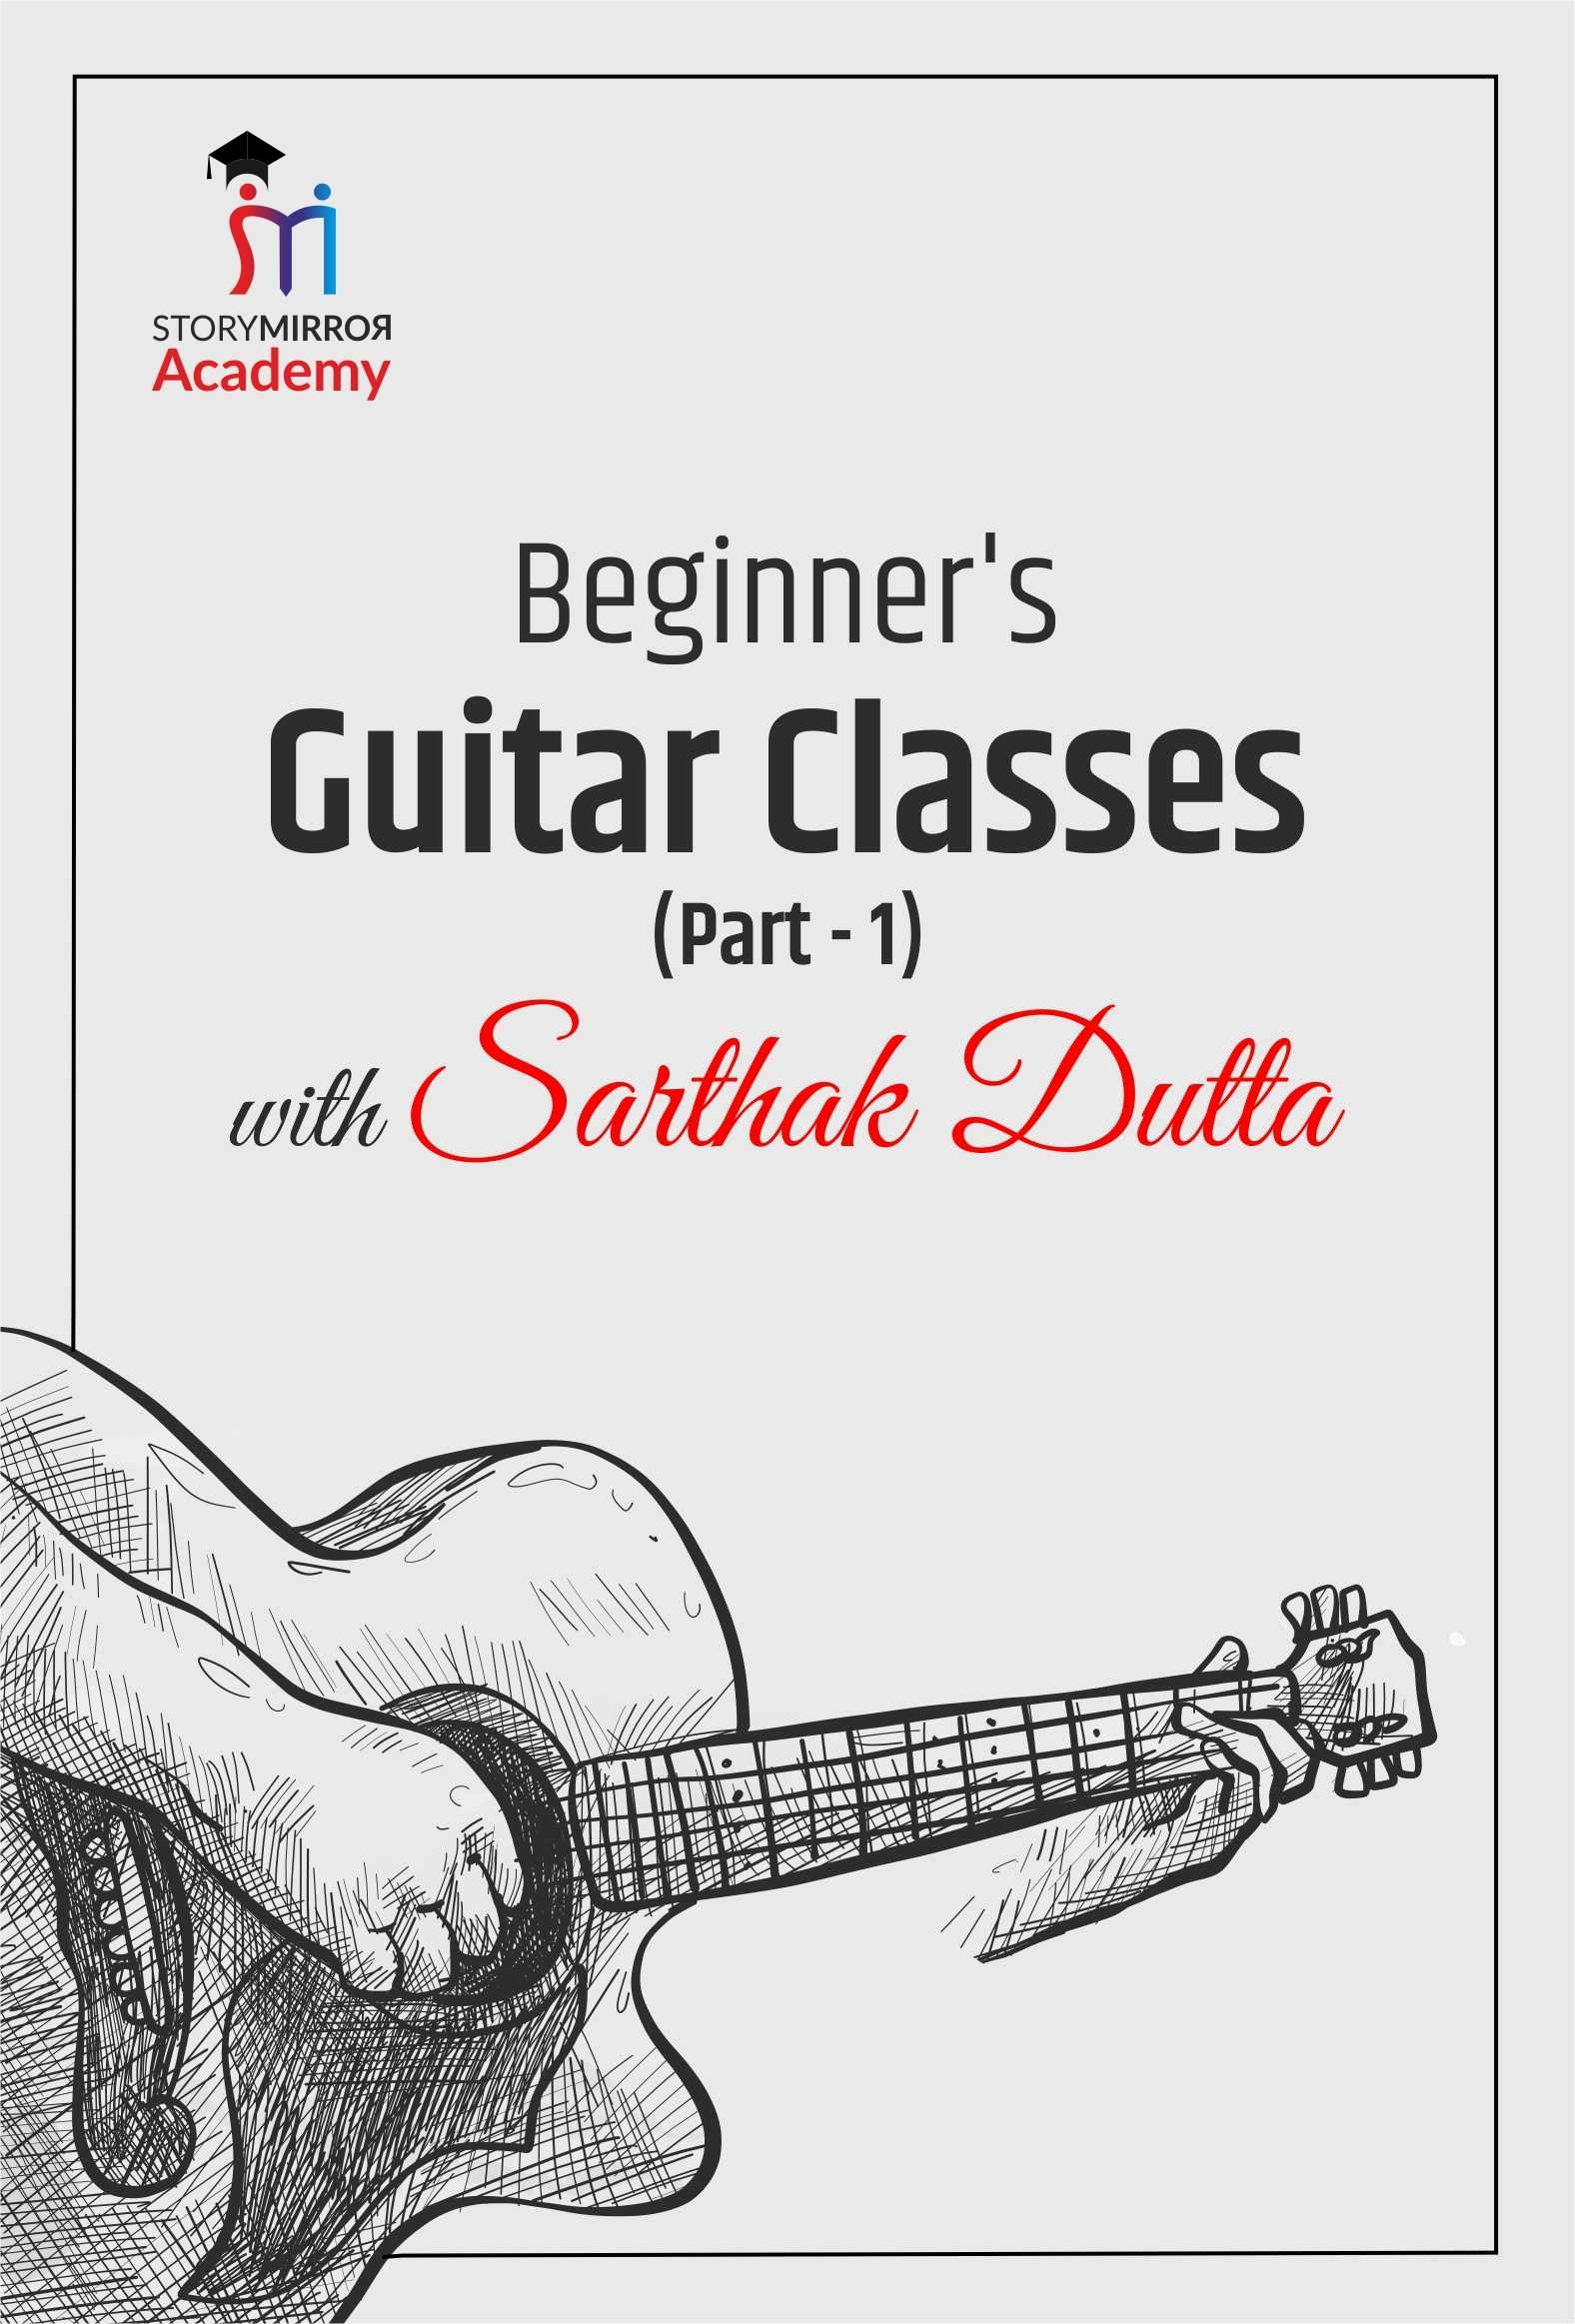 Beginner's Guitar Classes